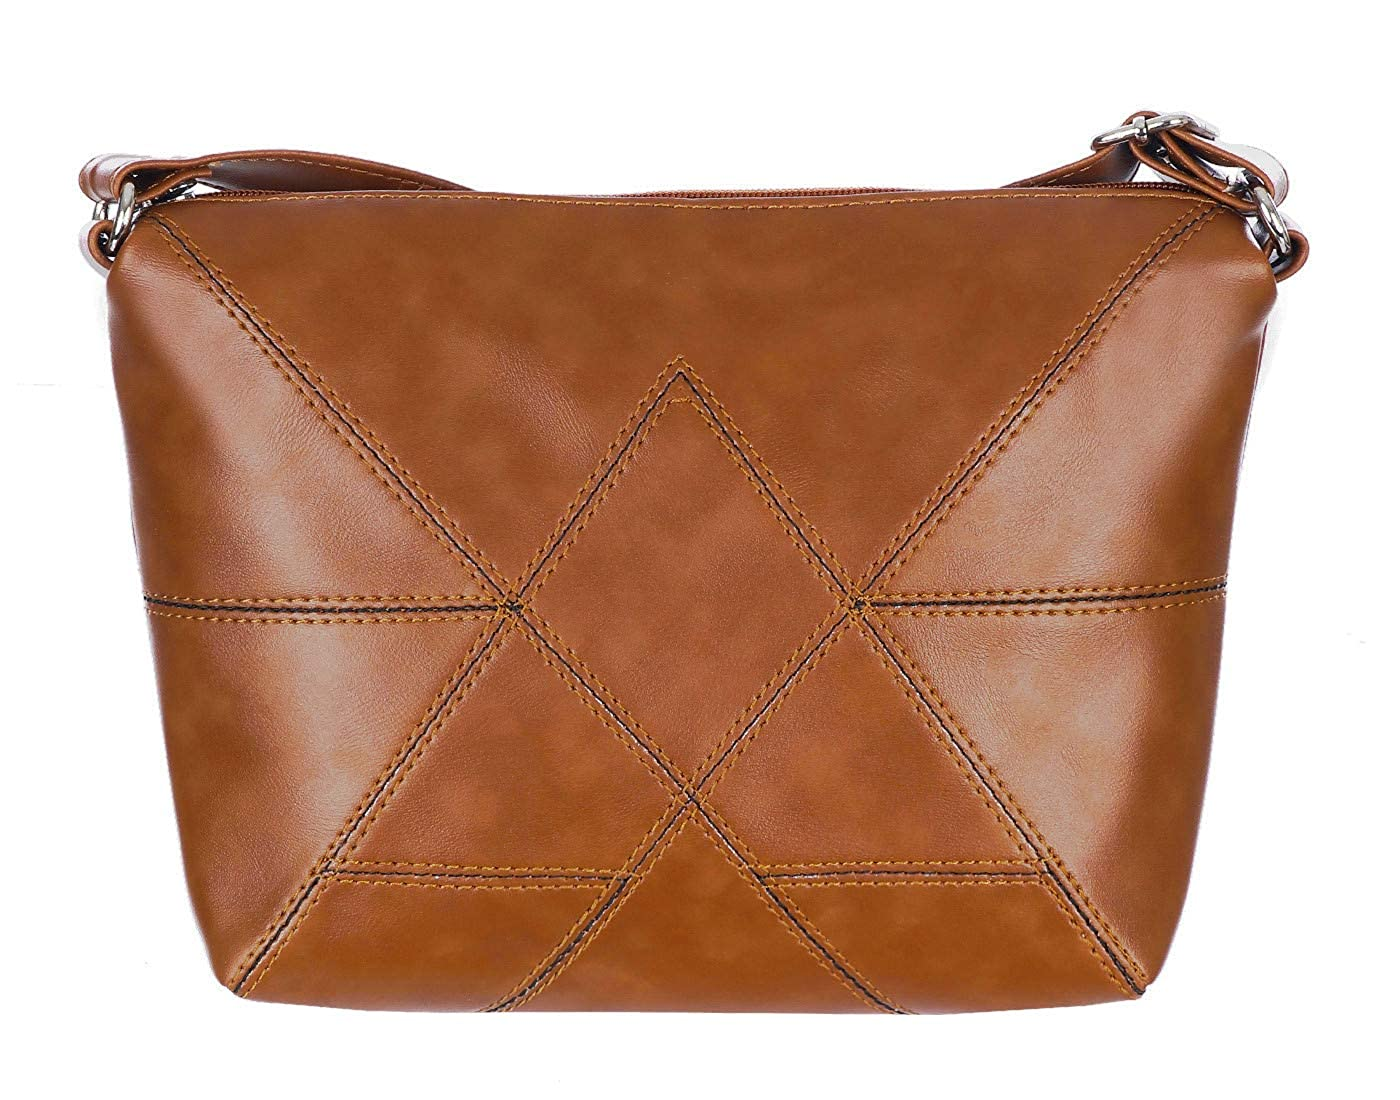 Generic Women's Leather Sling Bag (Tan, slg_90)